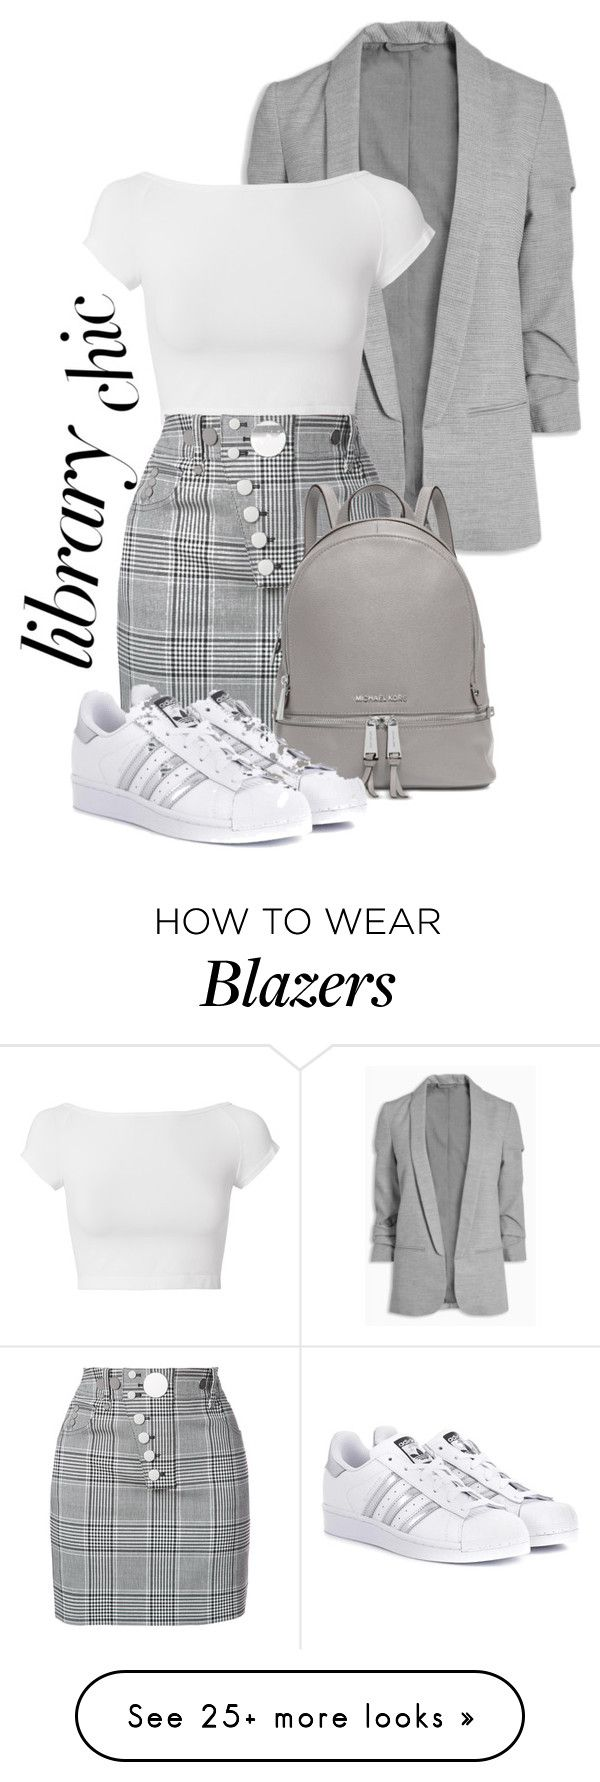 """ready to read...?"" by googdaber on Polyvore featuring Helmut Lang, Alexander Wang, Michael Kors and adidas Originals"